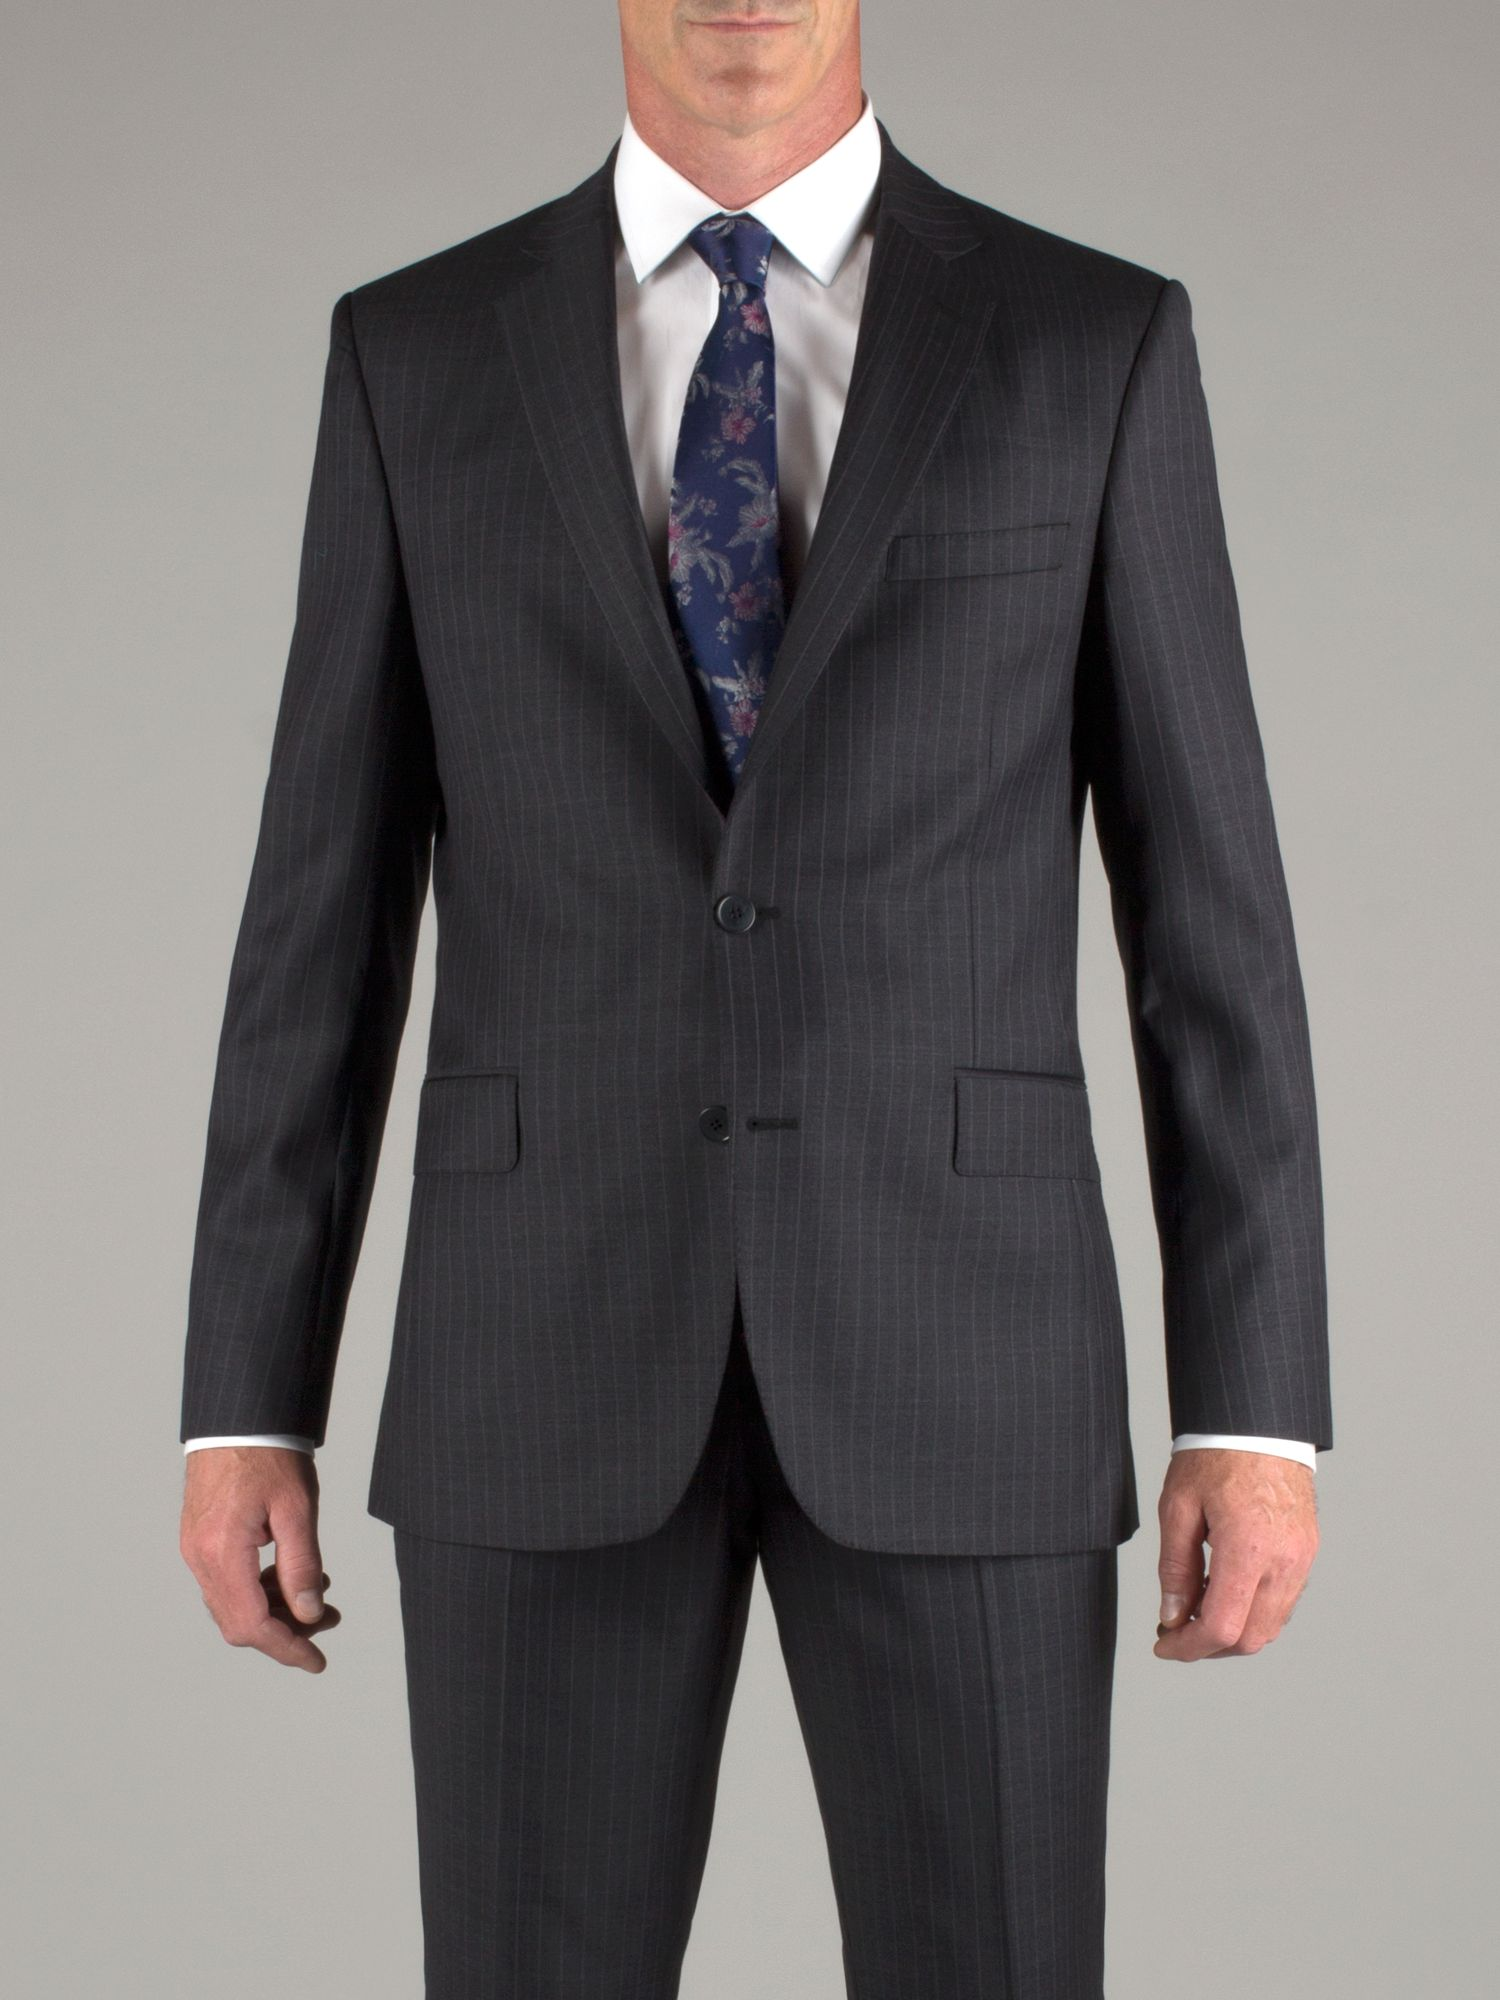 Grey purple pinstripe jacket